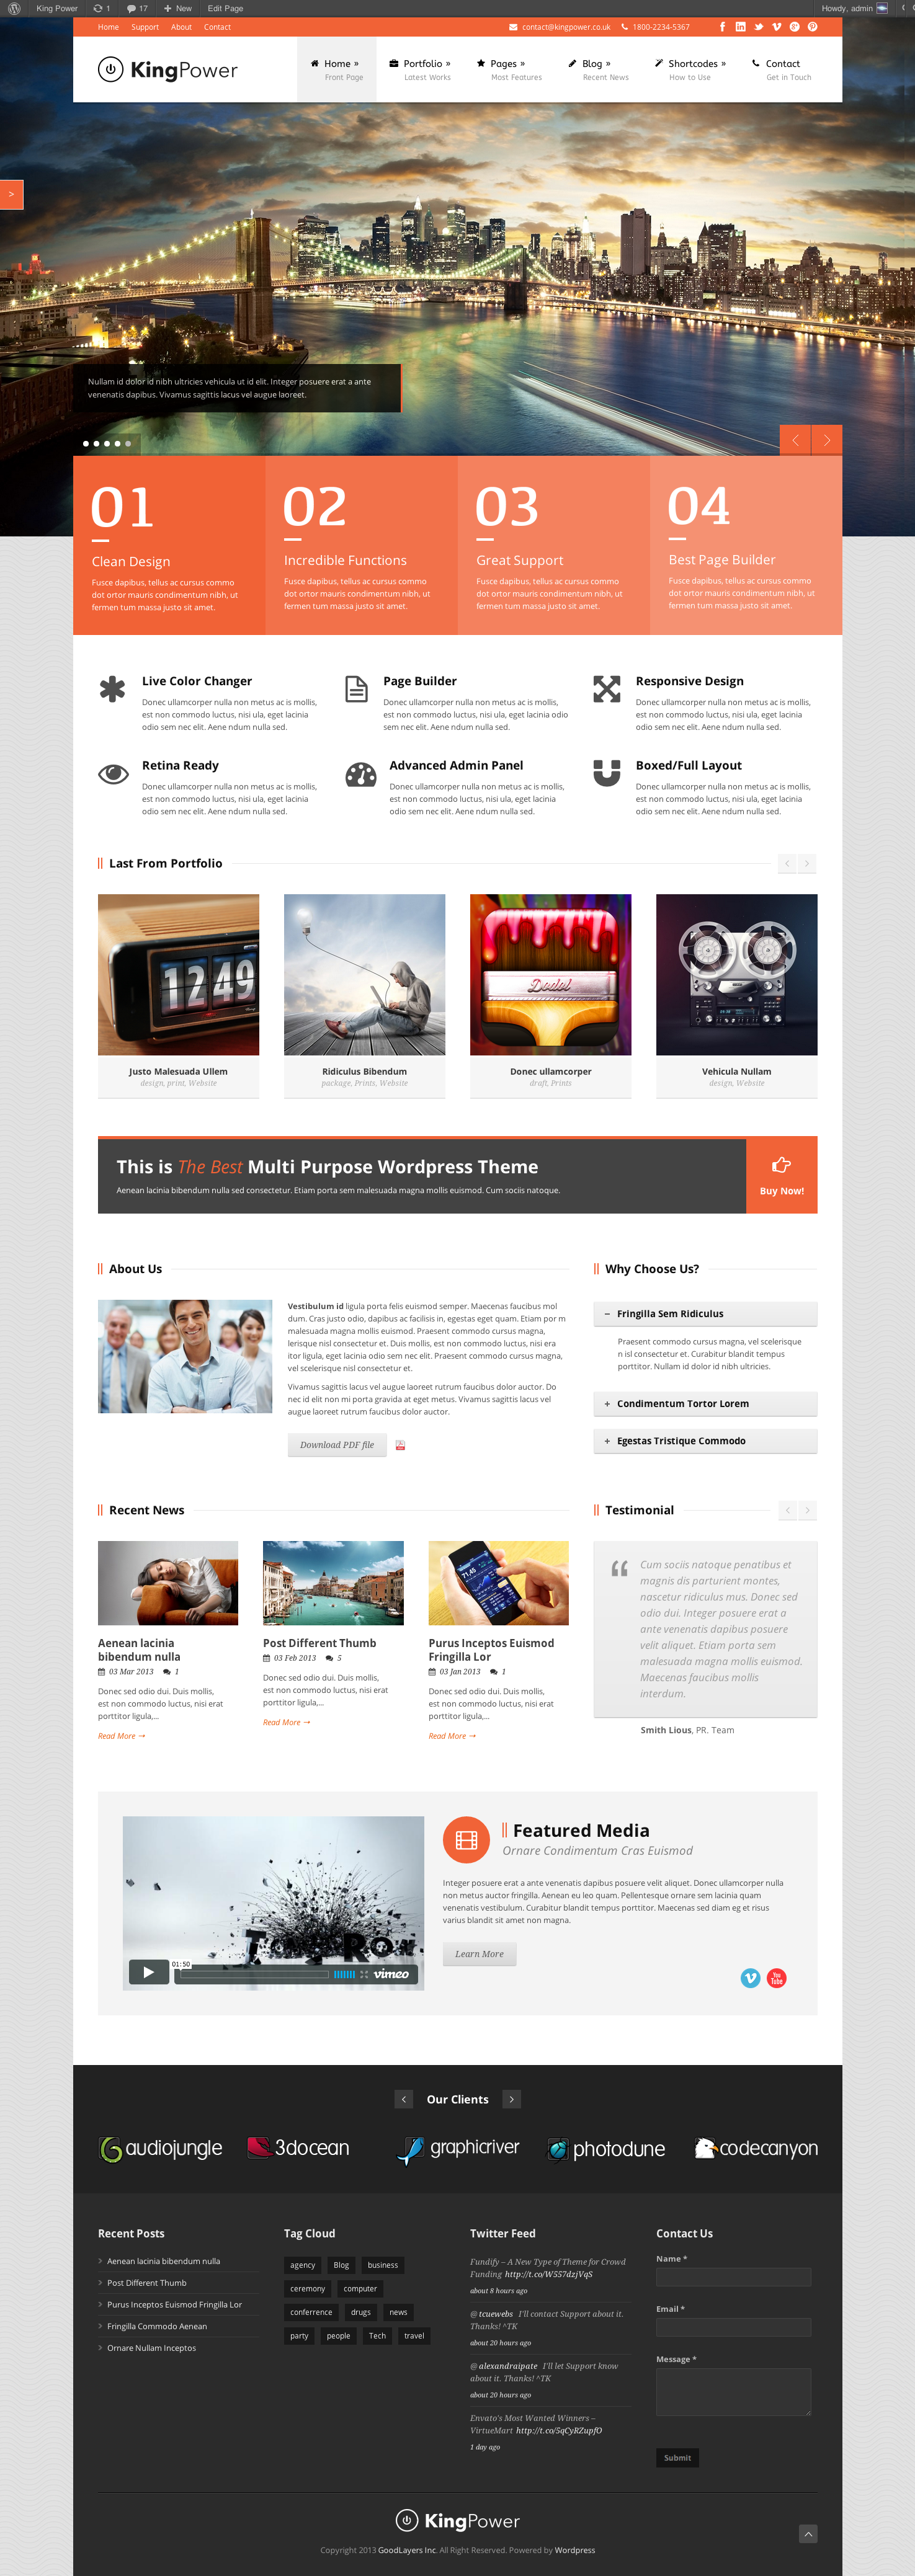 King Power - Retina Ready Multi-Purpose Theme - index page with color changed